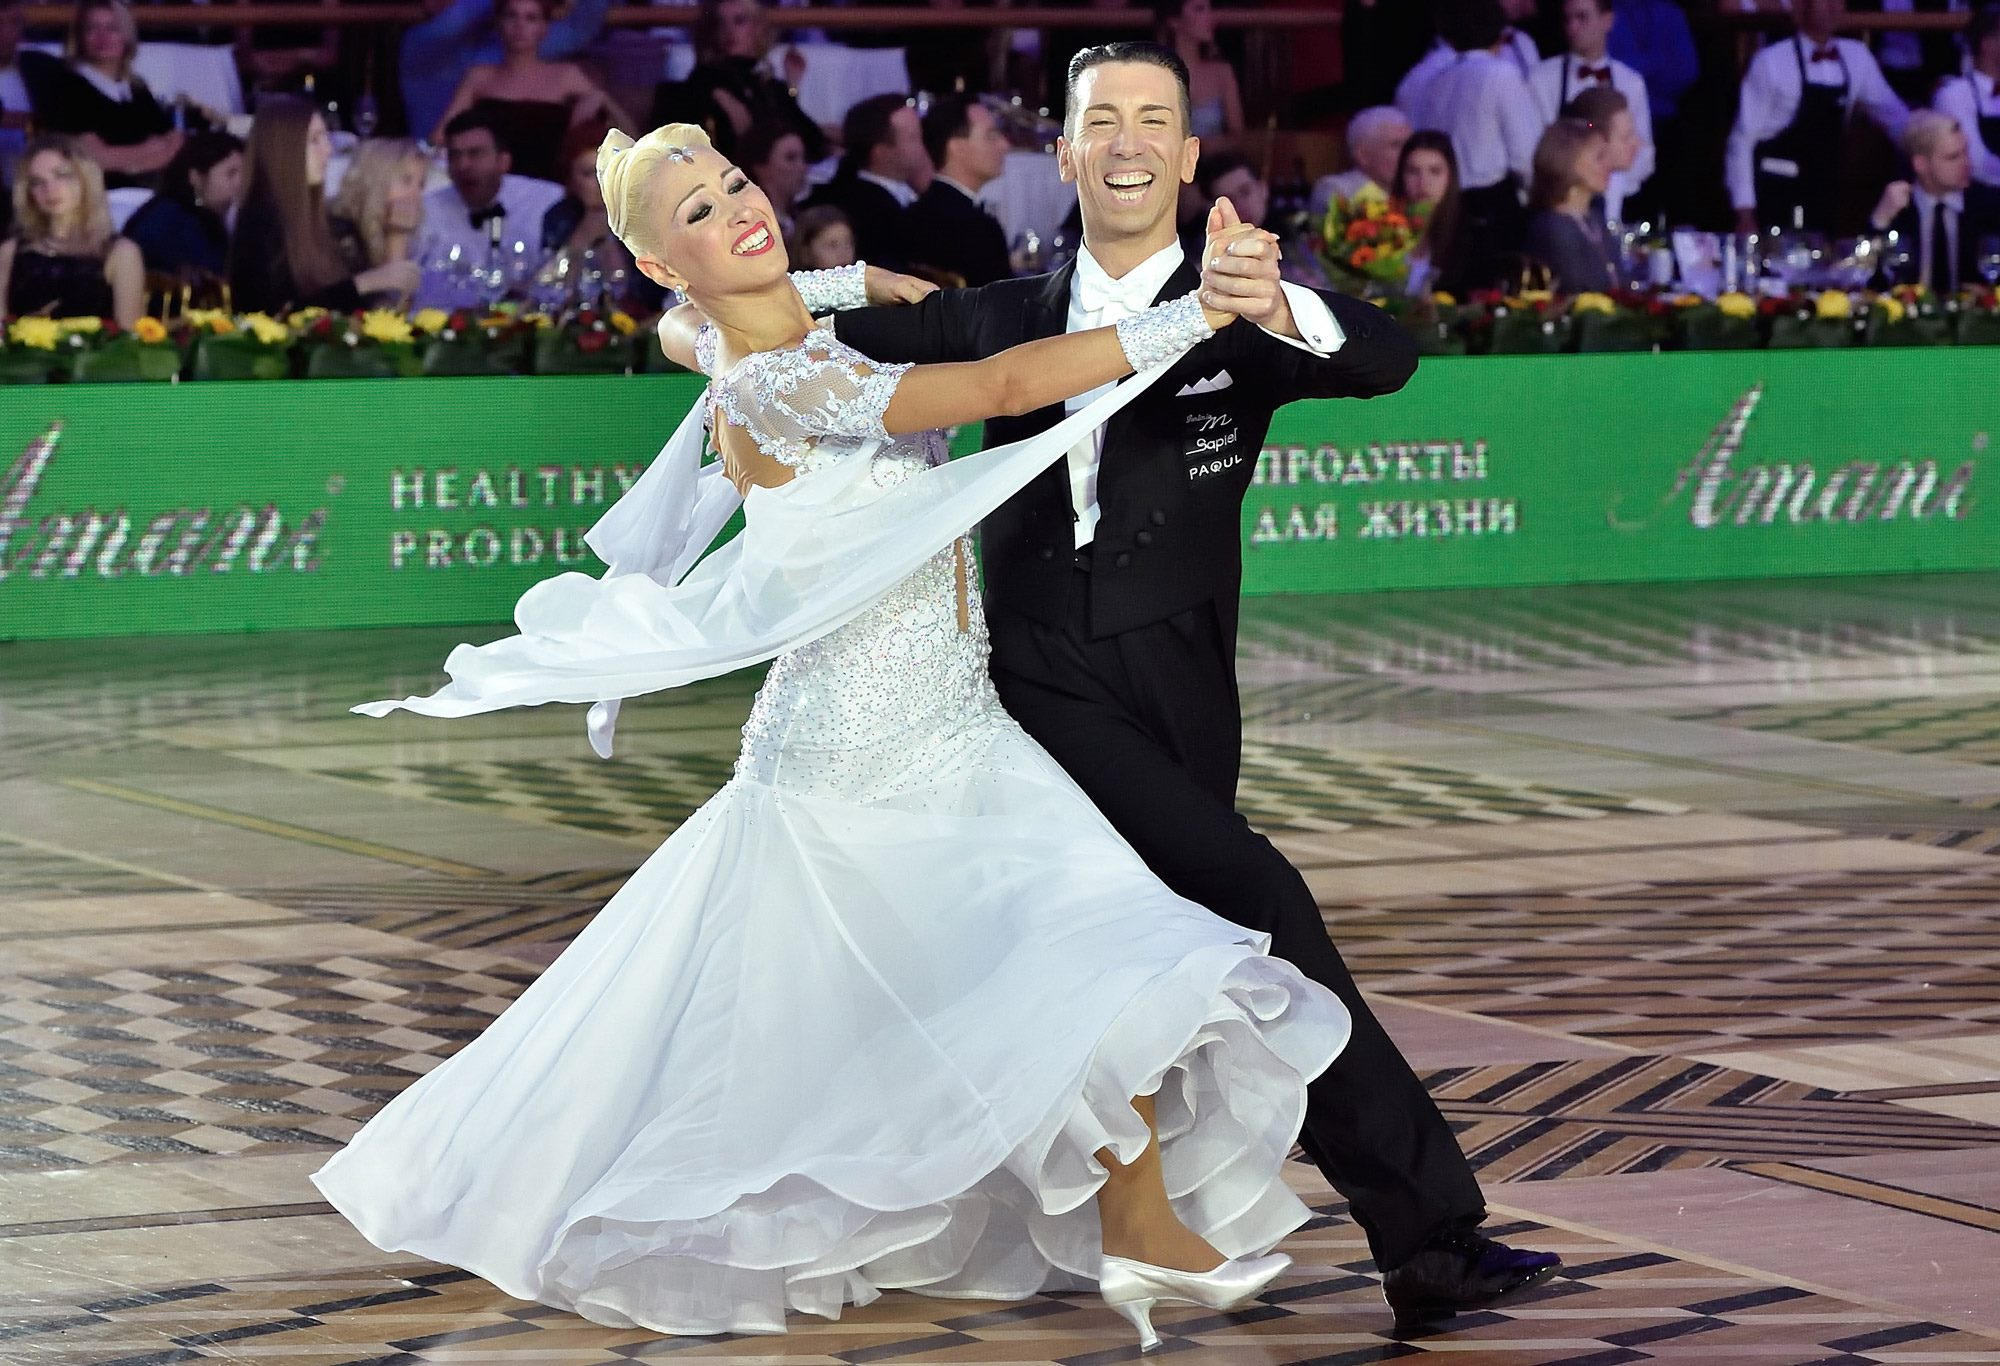 World Ballroom Championship 2018 in Kremlin